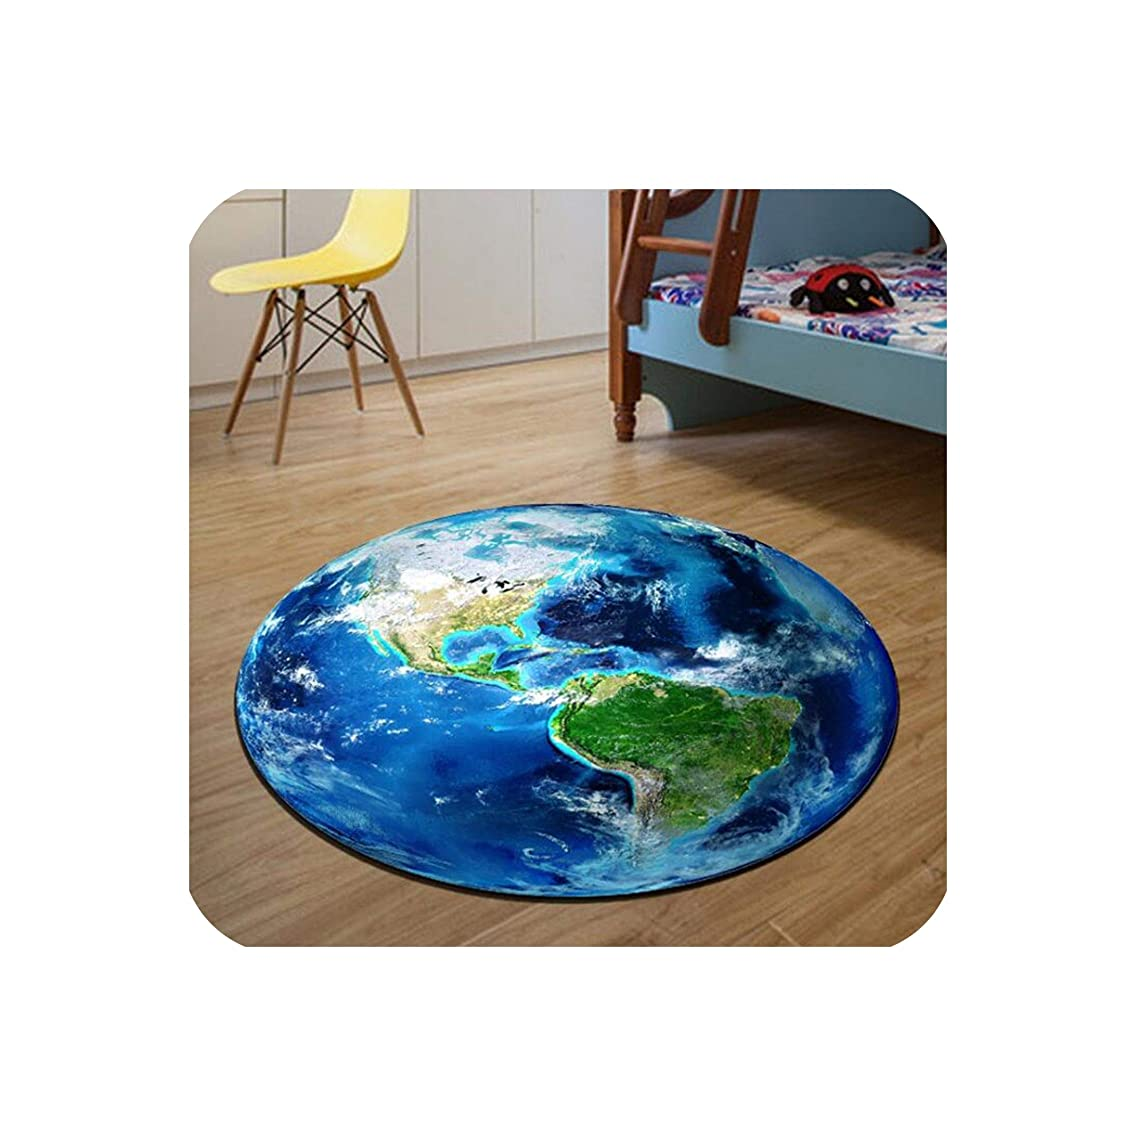 Round Carpet 3D Print Earth Planet Soft Carpets Anti-Slip Rugs Computer Chair Mat Floor Mat for Kids Room Home Decor,Diameter 100cm